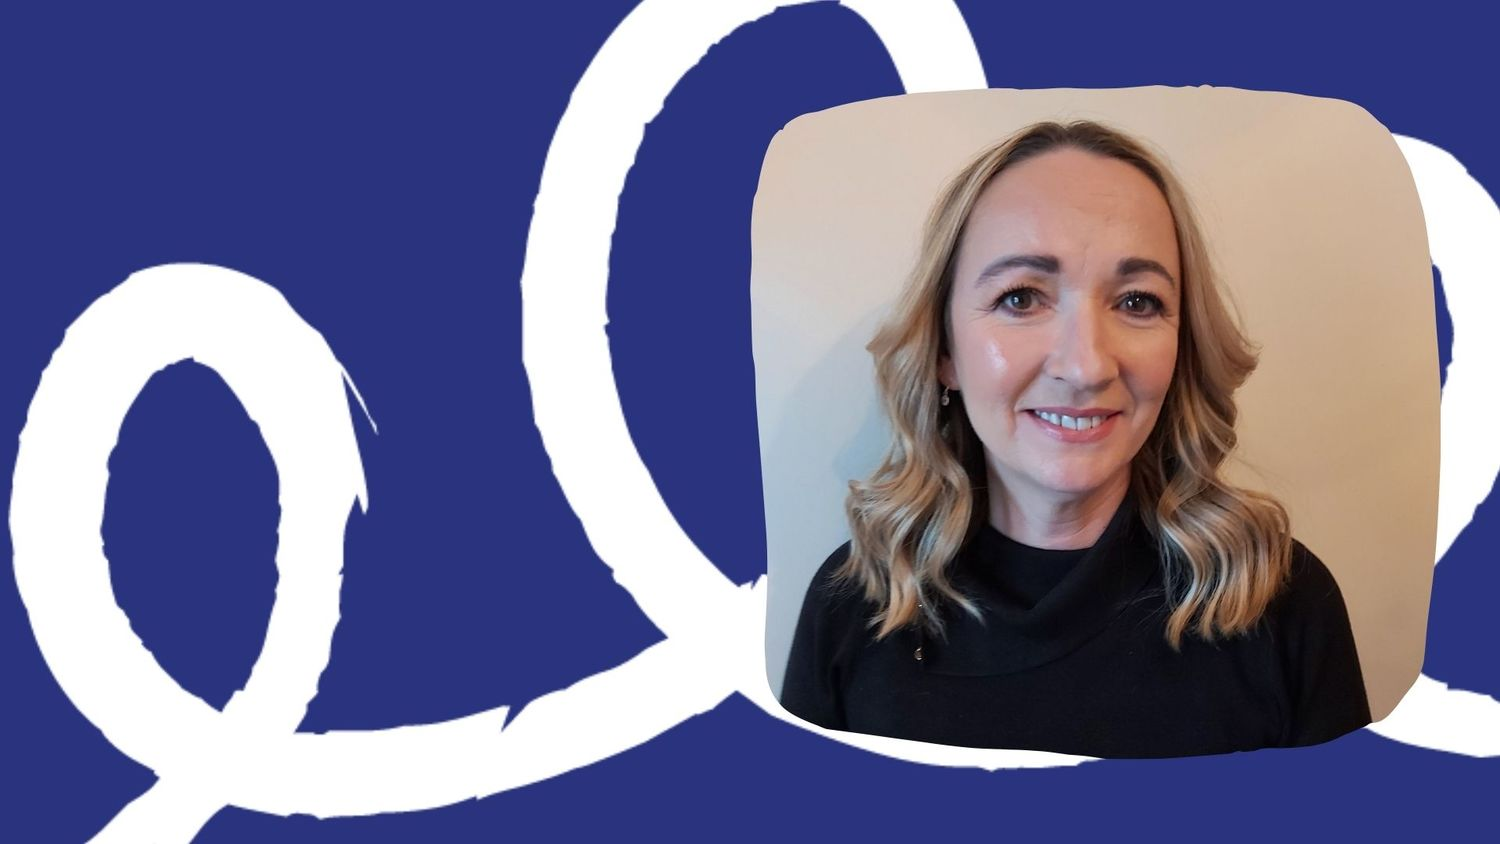 Welcoming our new Peace Impact Programme Development Officer